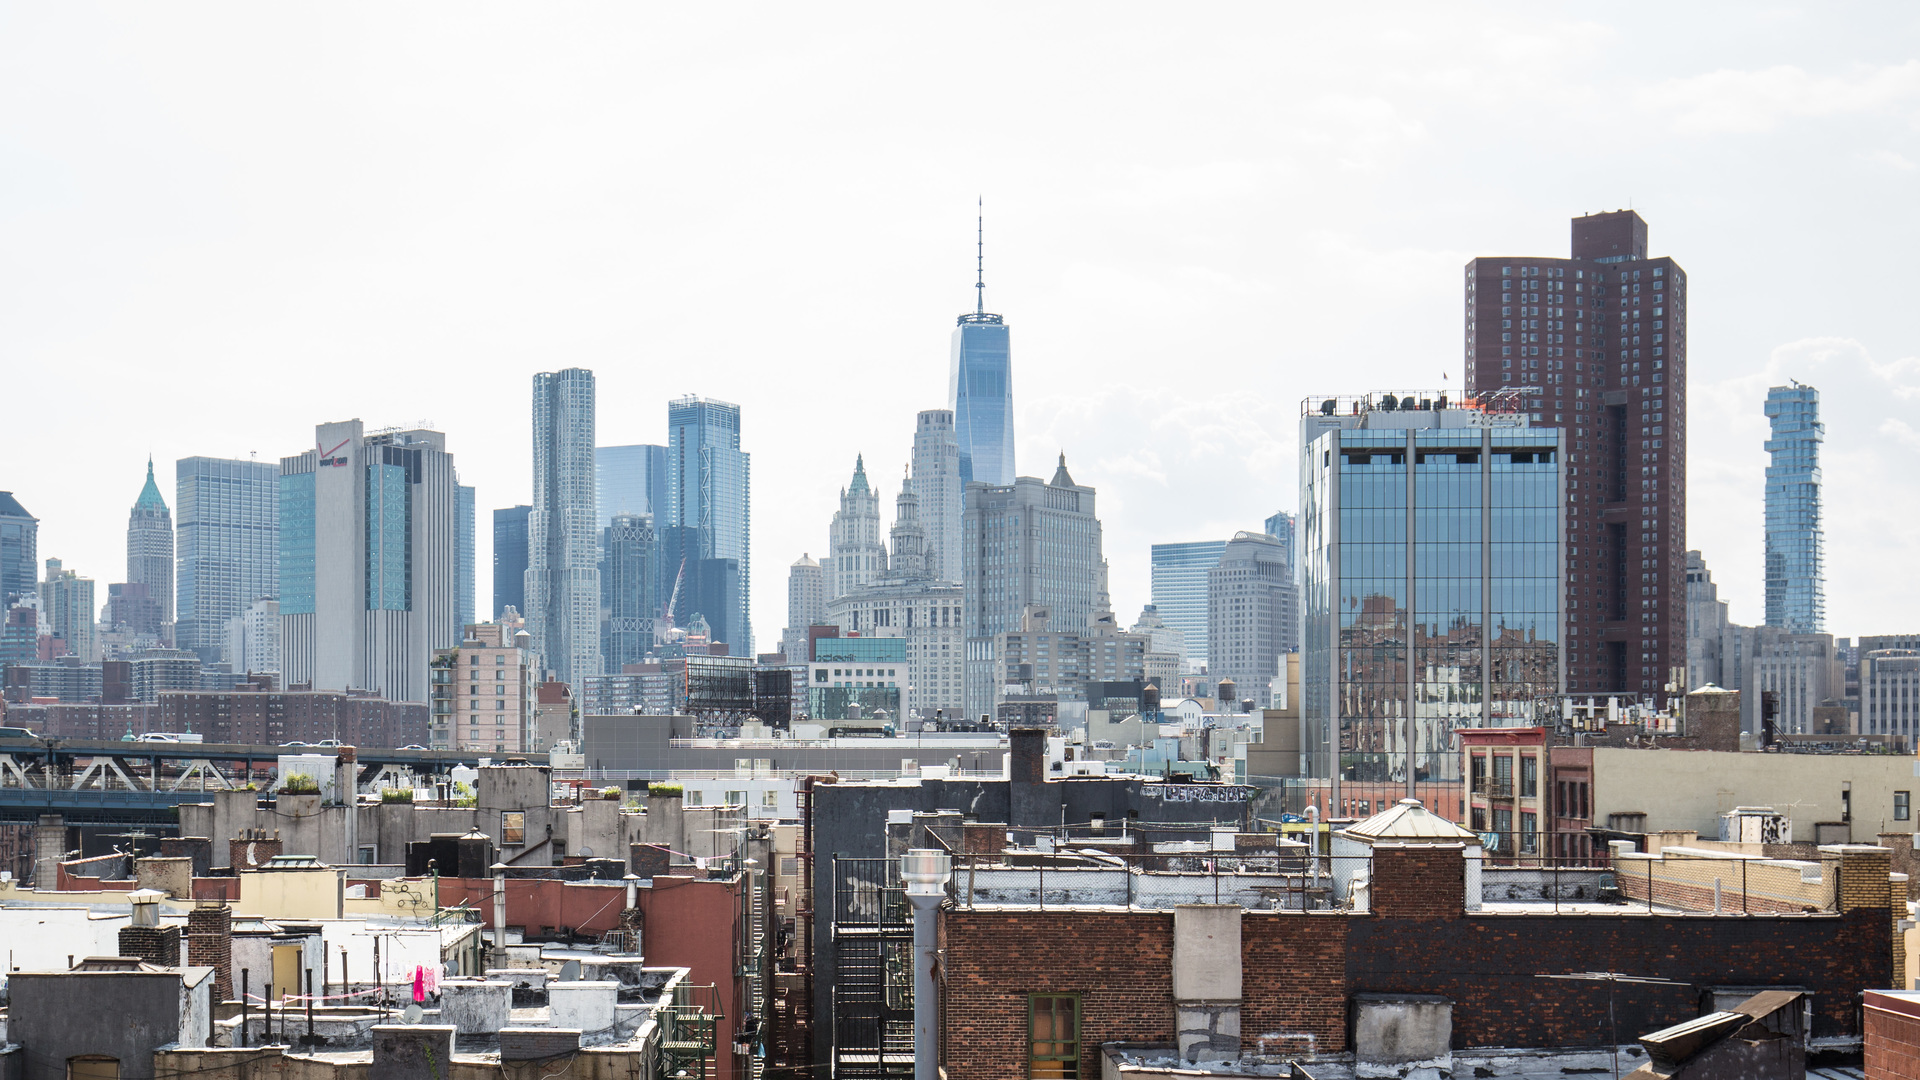 10 rutgers rooftop 7 13 18 freedom tower